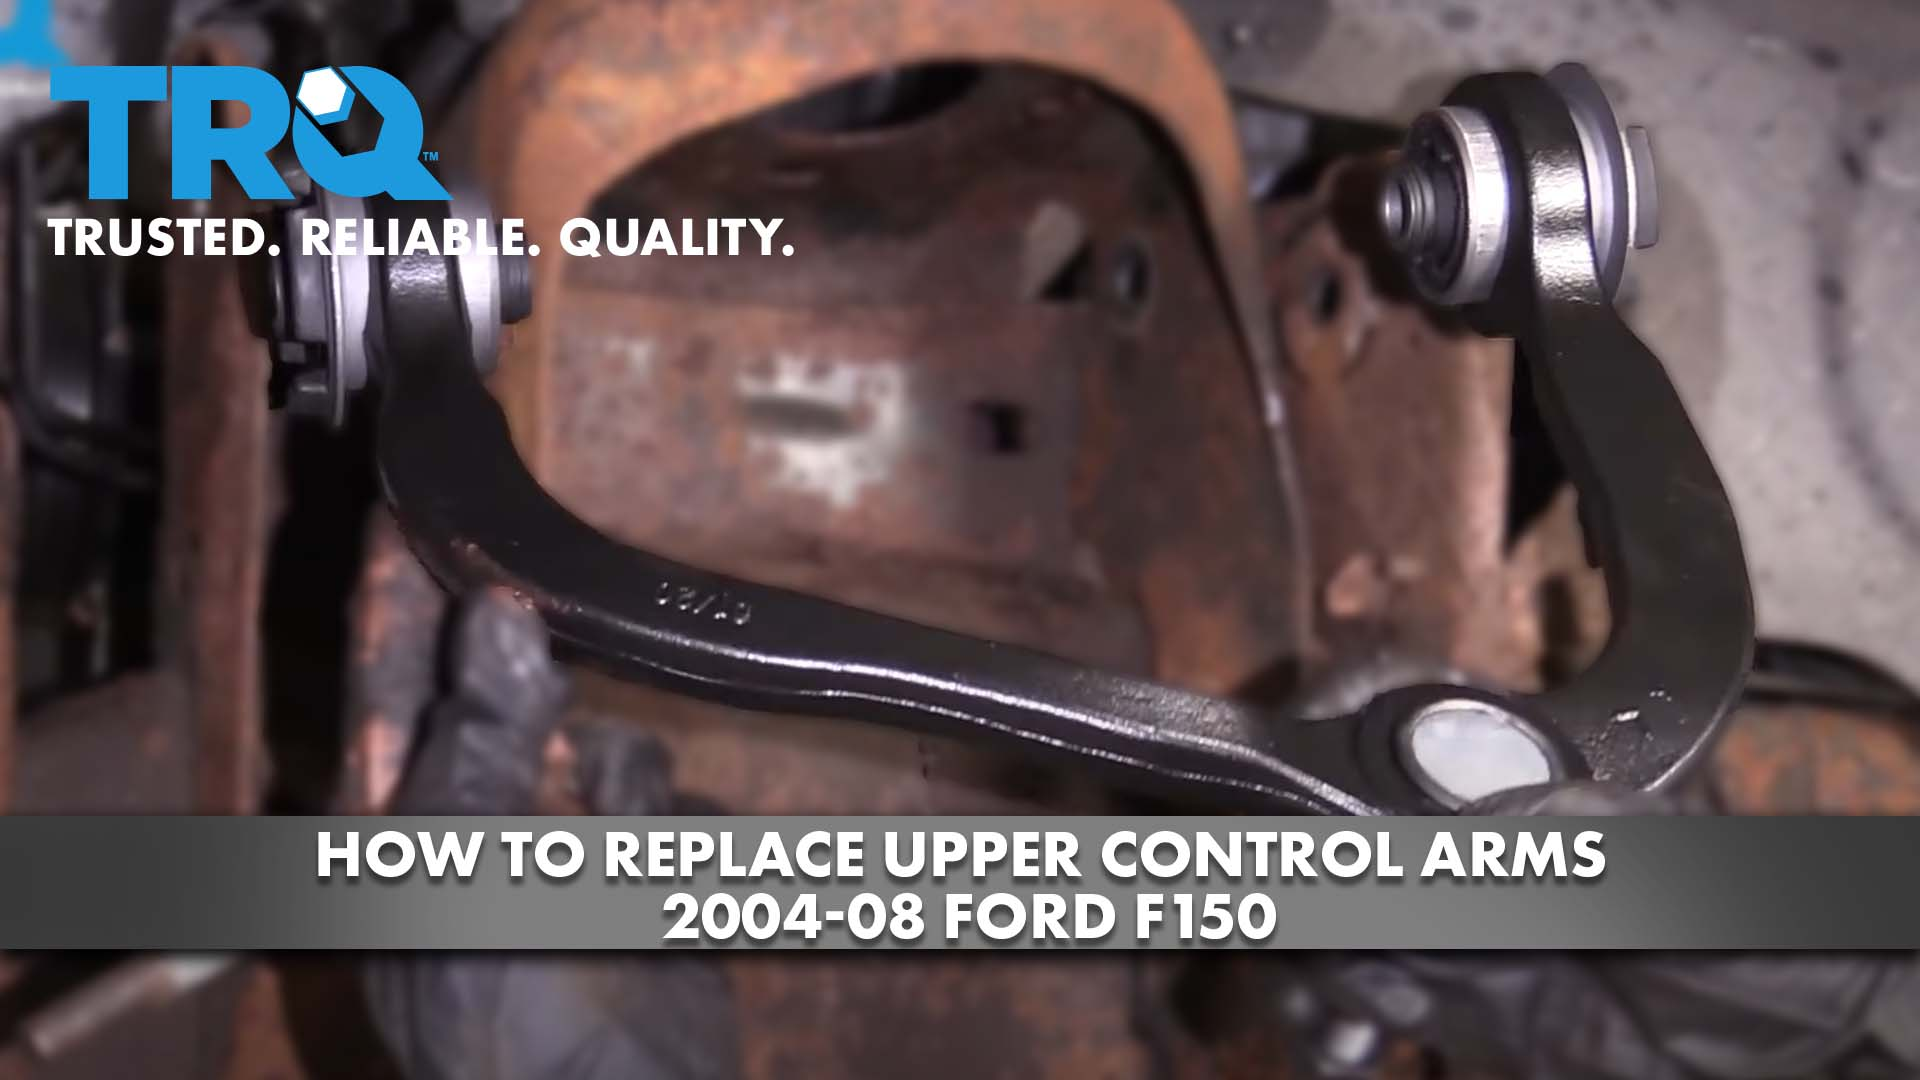 How to Replace Upper Control Arms 2004-08 Ford F150